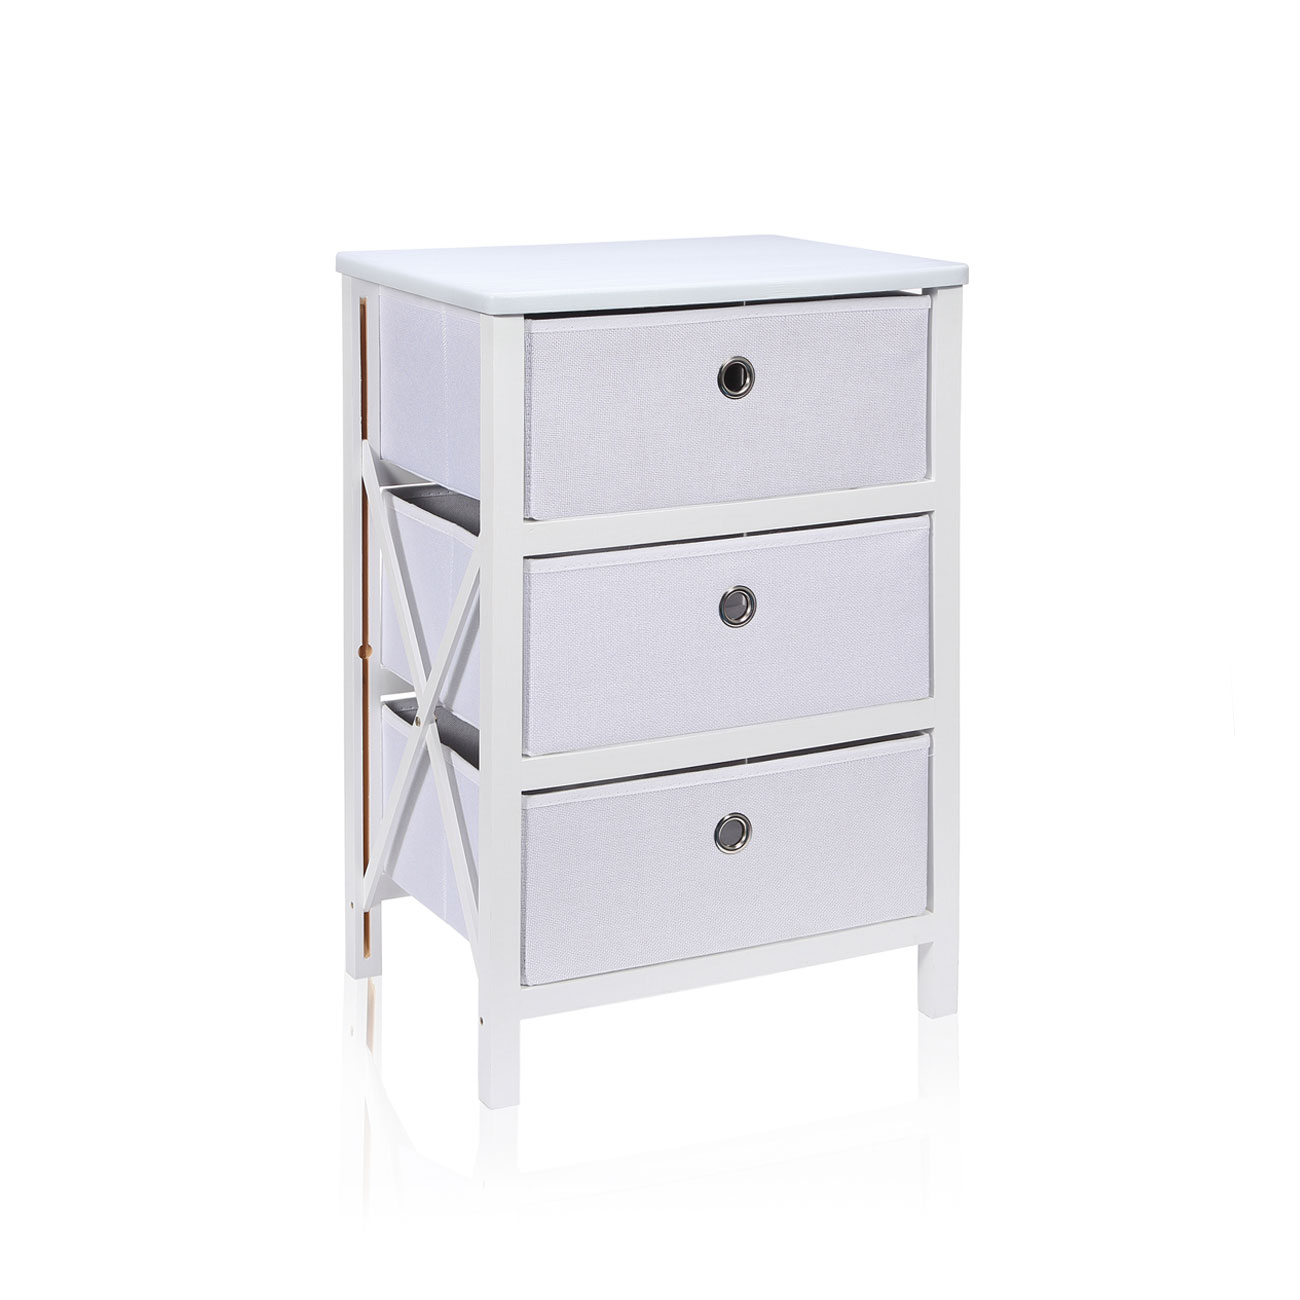 Makika commode pliable avec 3 tiroirs en blanc maison for Meuble bureau pliable